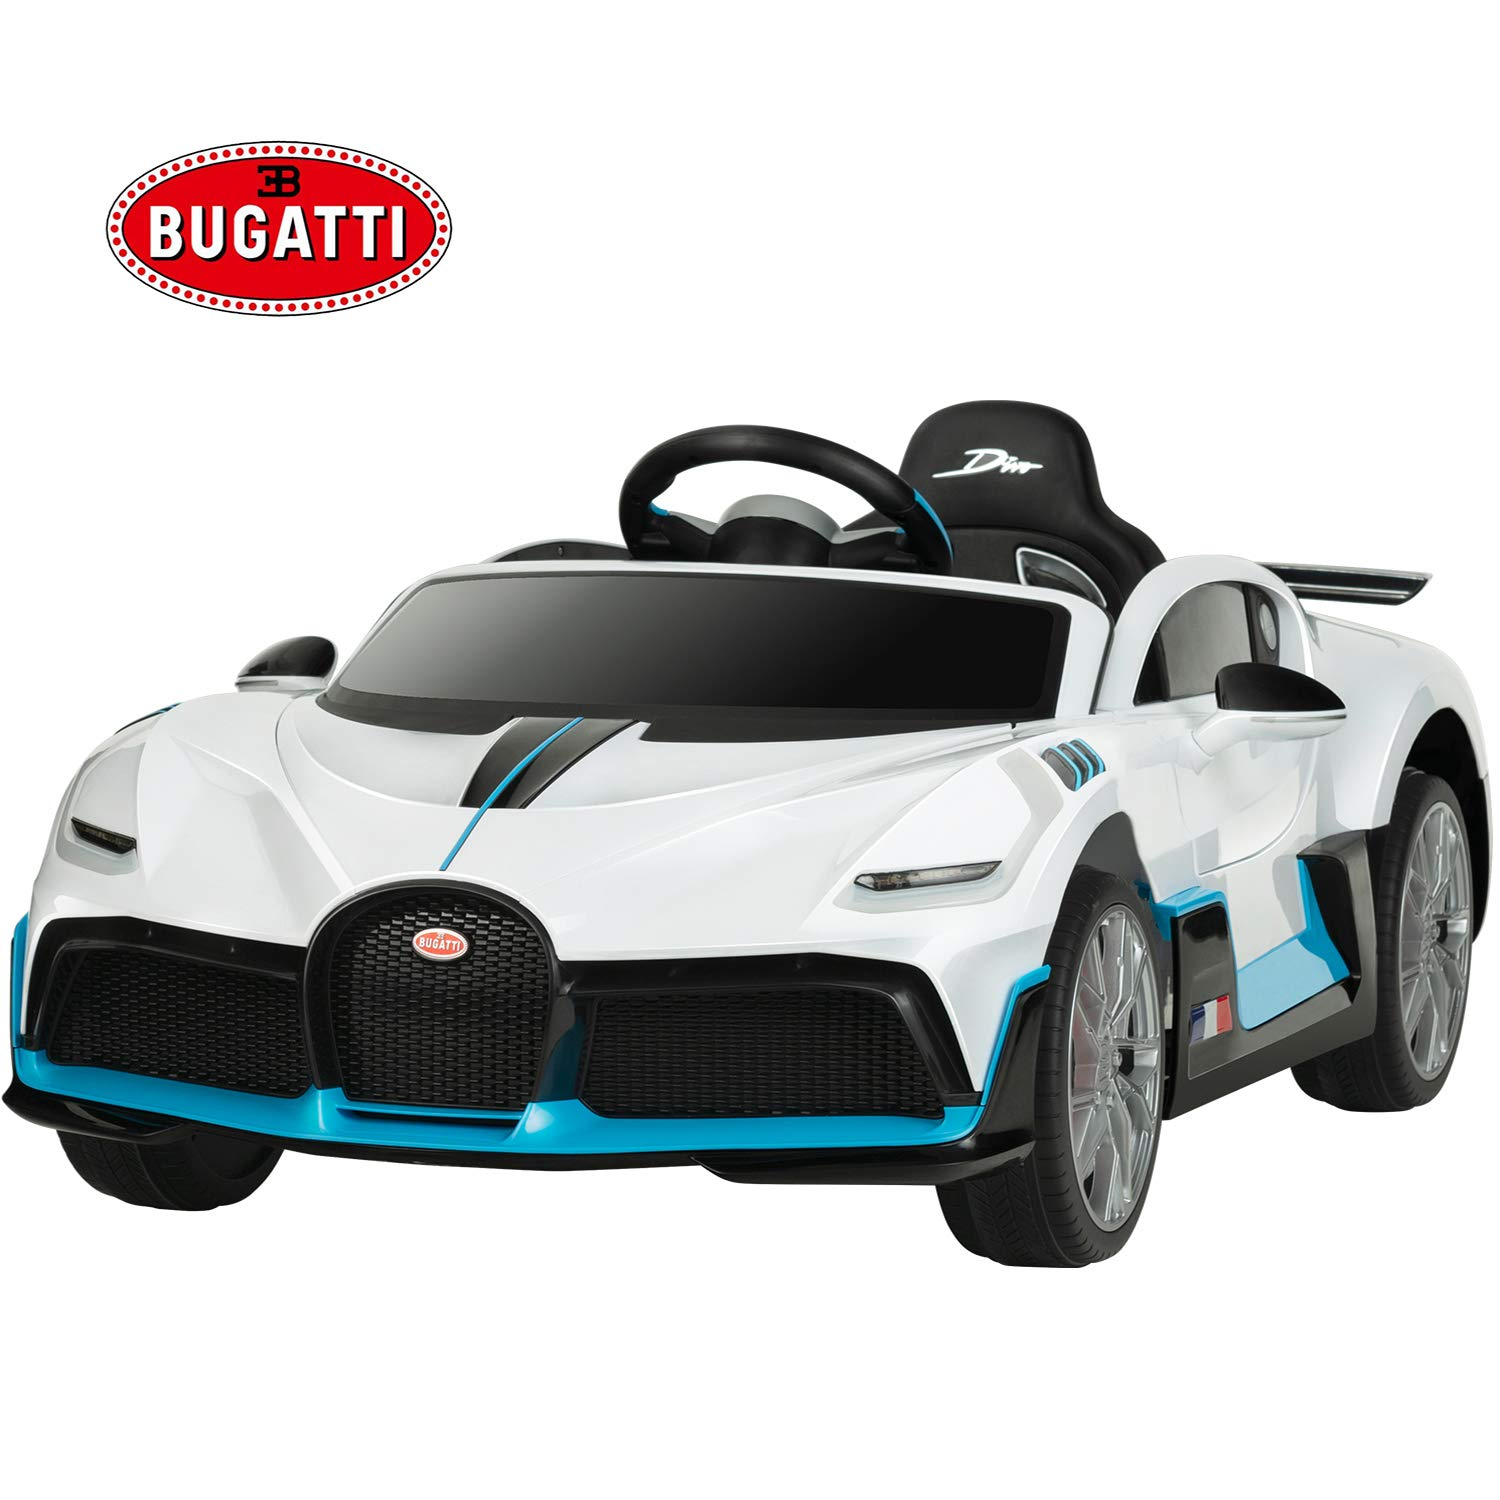 Uenjoy 12V Licensed Bugatti Divo Kids Ride On Car Electric Cars Motorized Vehicles for Kids, with Remote Control, Music, Horn, Spring Suspension, Safety Lock, White